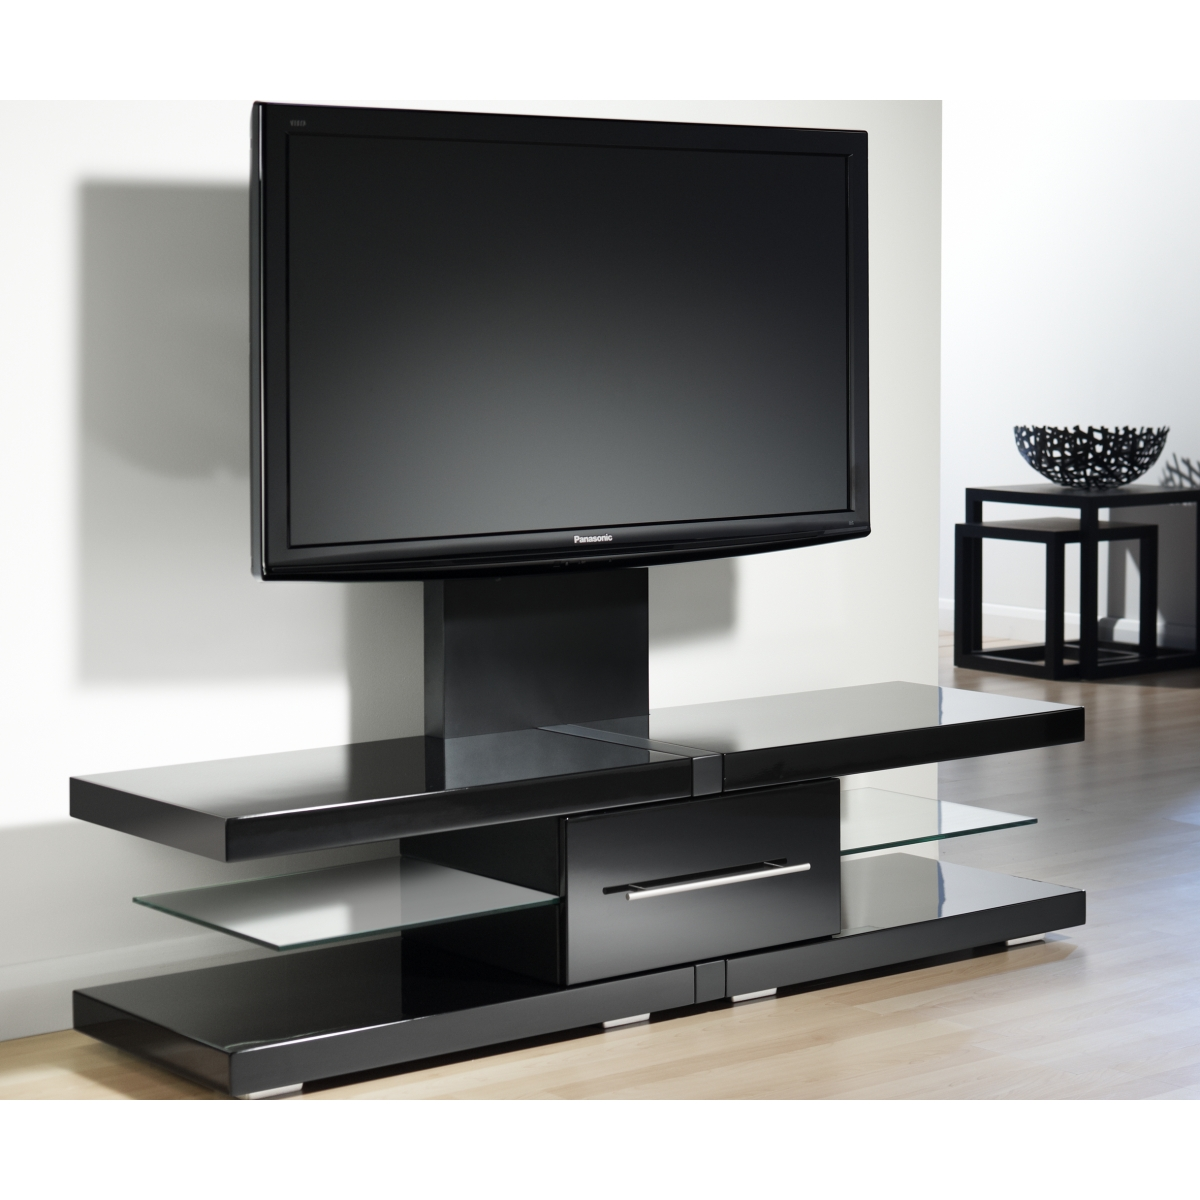 Black Design Flat Screen Tv Stands With Mount